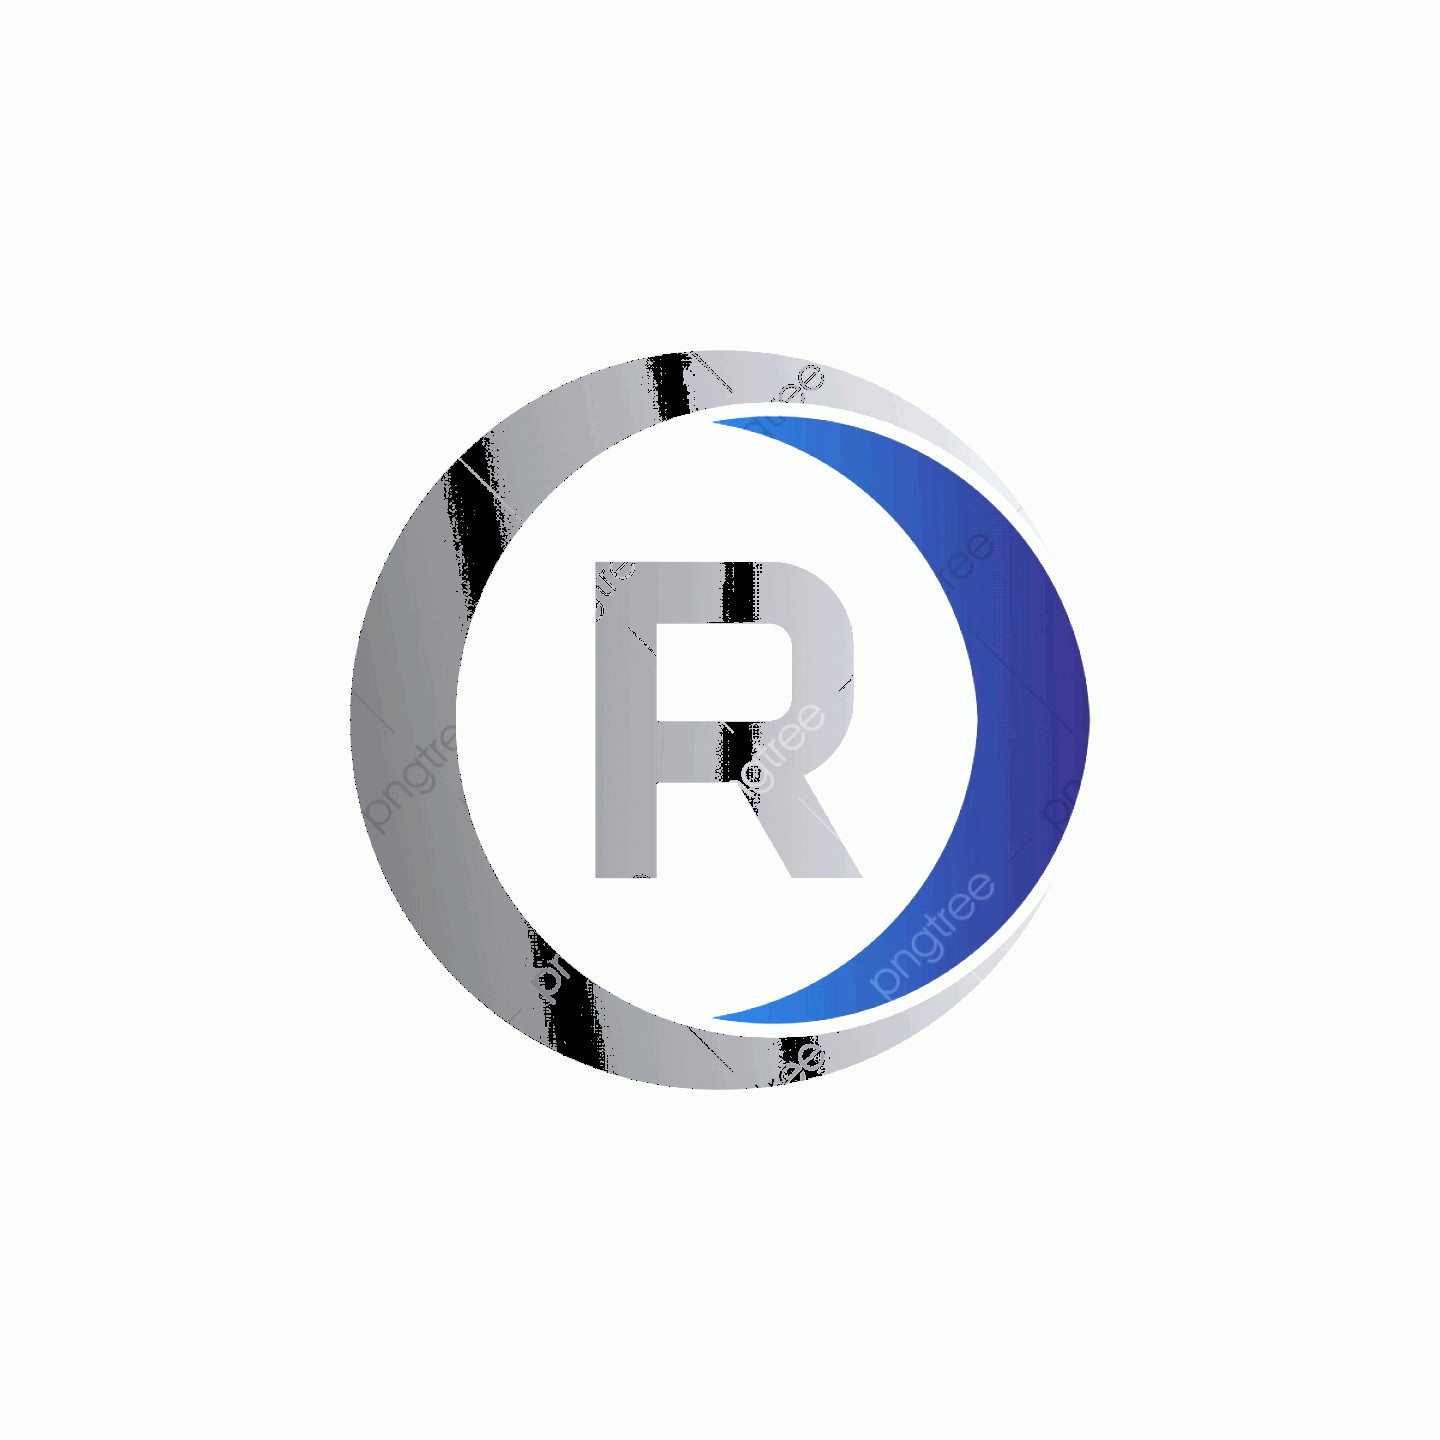 R Transparent Background Vector: Vector Illustration Initial Letter R And Circle Icon Logo Modern Design